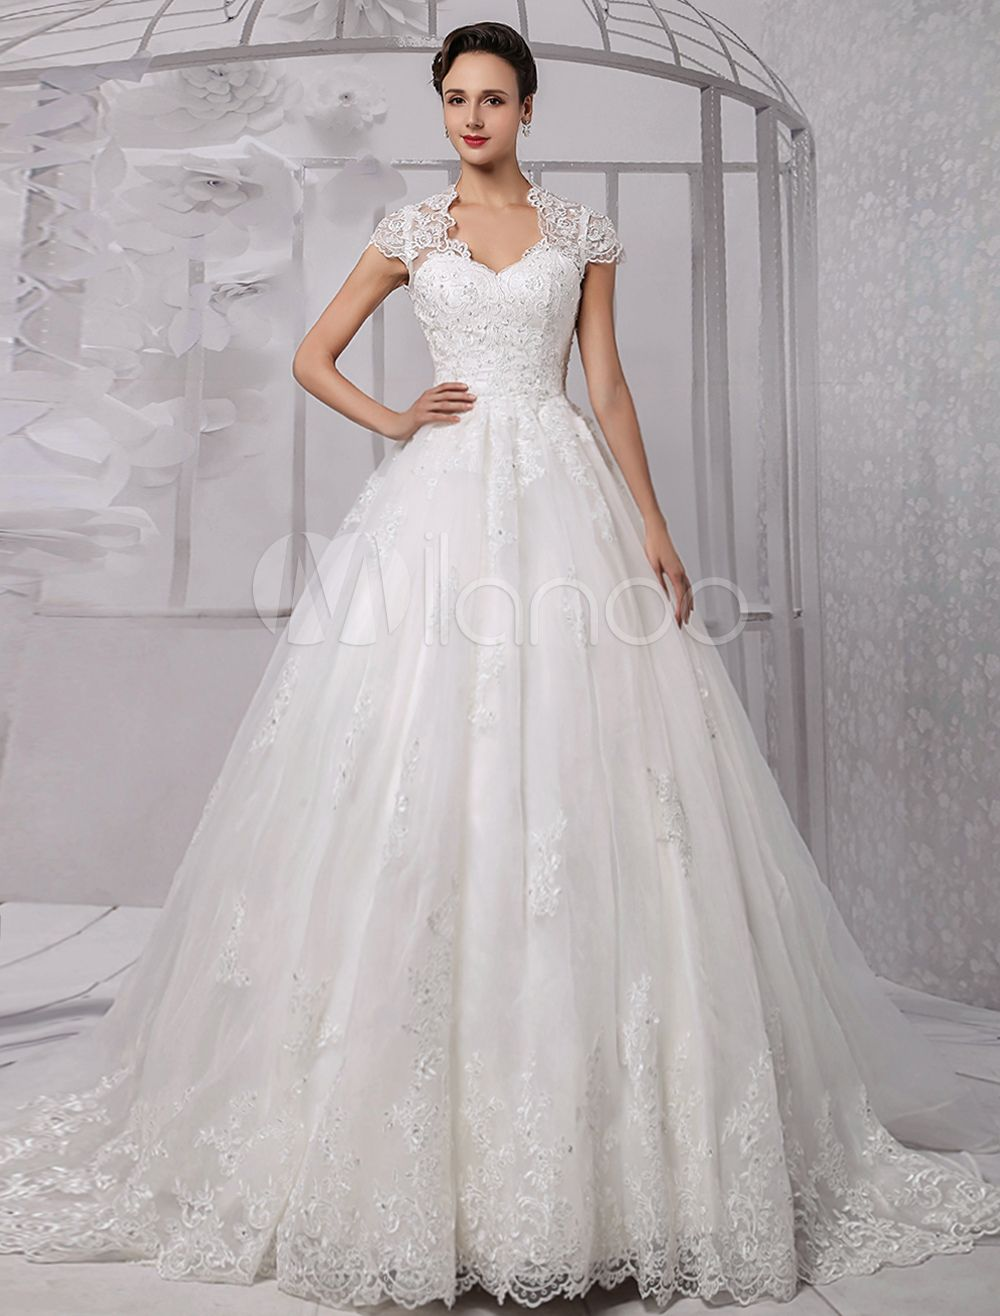 Cap sleeves ball gown back keyhole beaded lace wedding dress